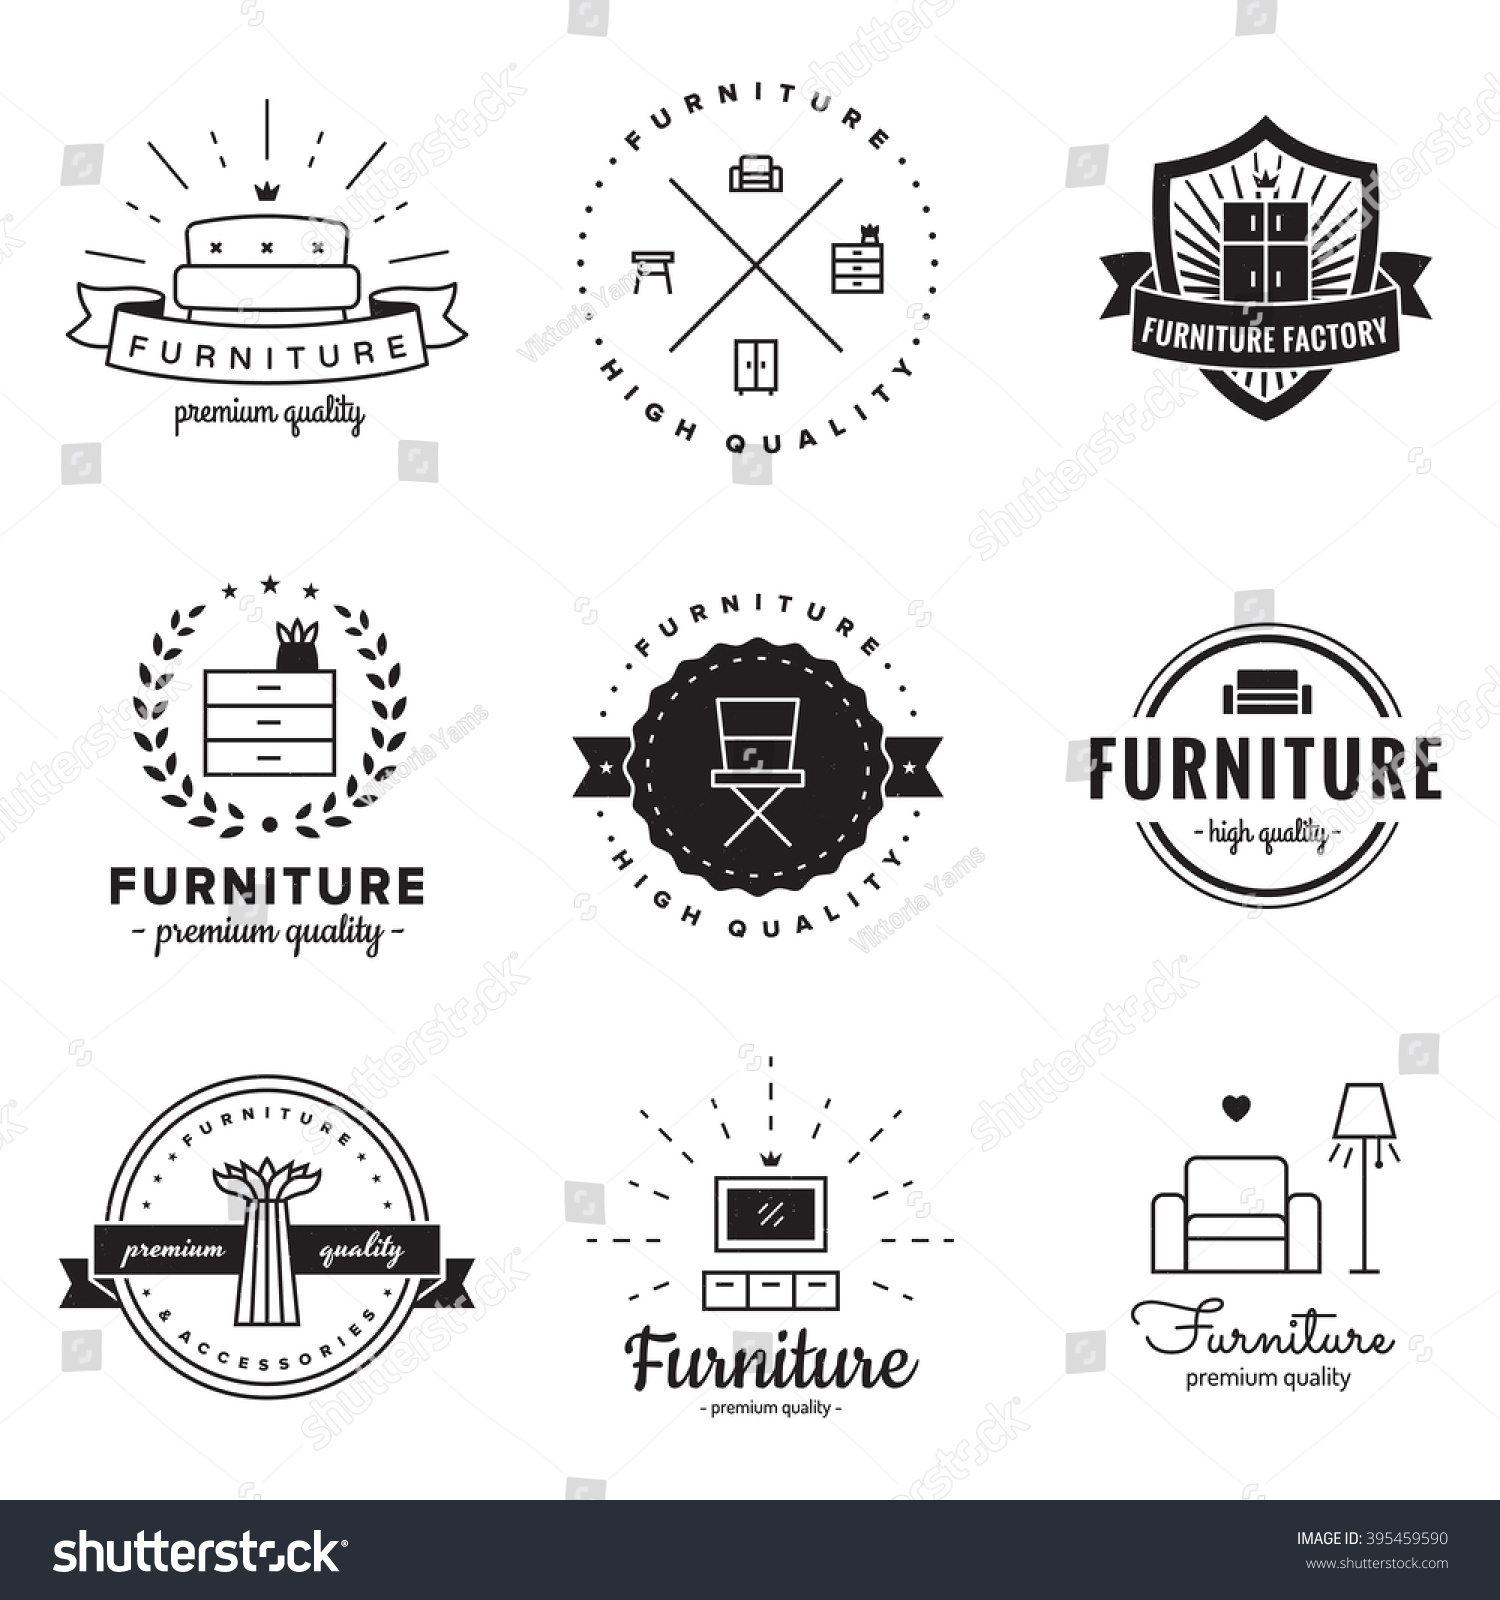 Vintage furniture logo Retro Furniture Furniture Logo Vintage Vector Set Hipster And Retro Style Perfect For Your Business Design Avopixcom Royaltyfree Furniture Logo Vintage Vector Setu2026 395459590 Stock